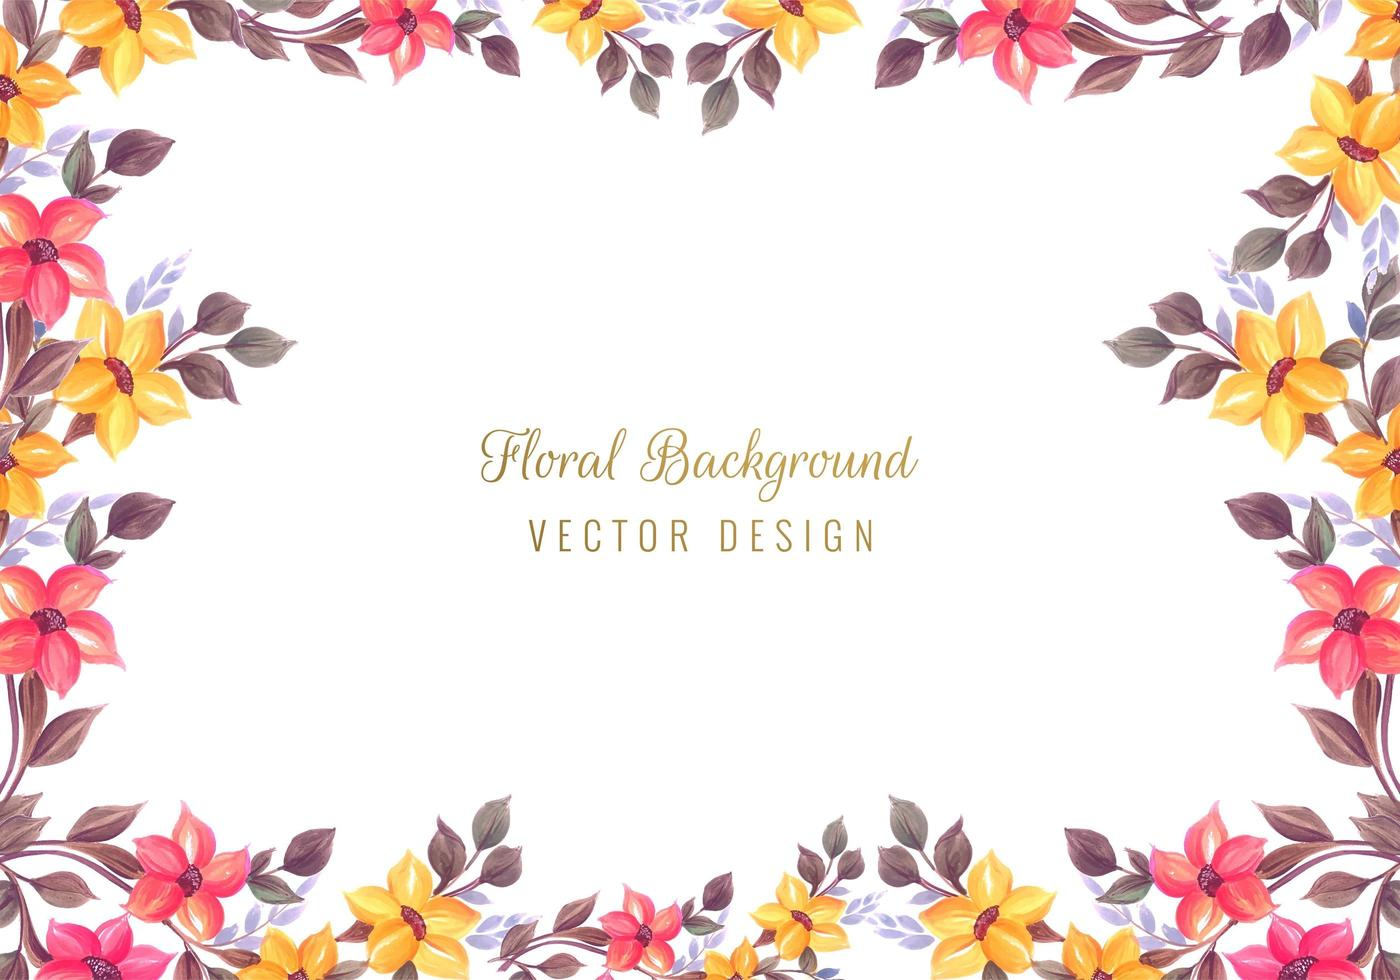 Decorative Colorful Floral Frame Card Background Download Free